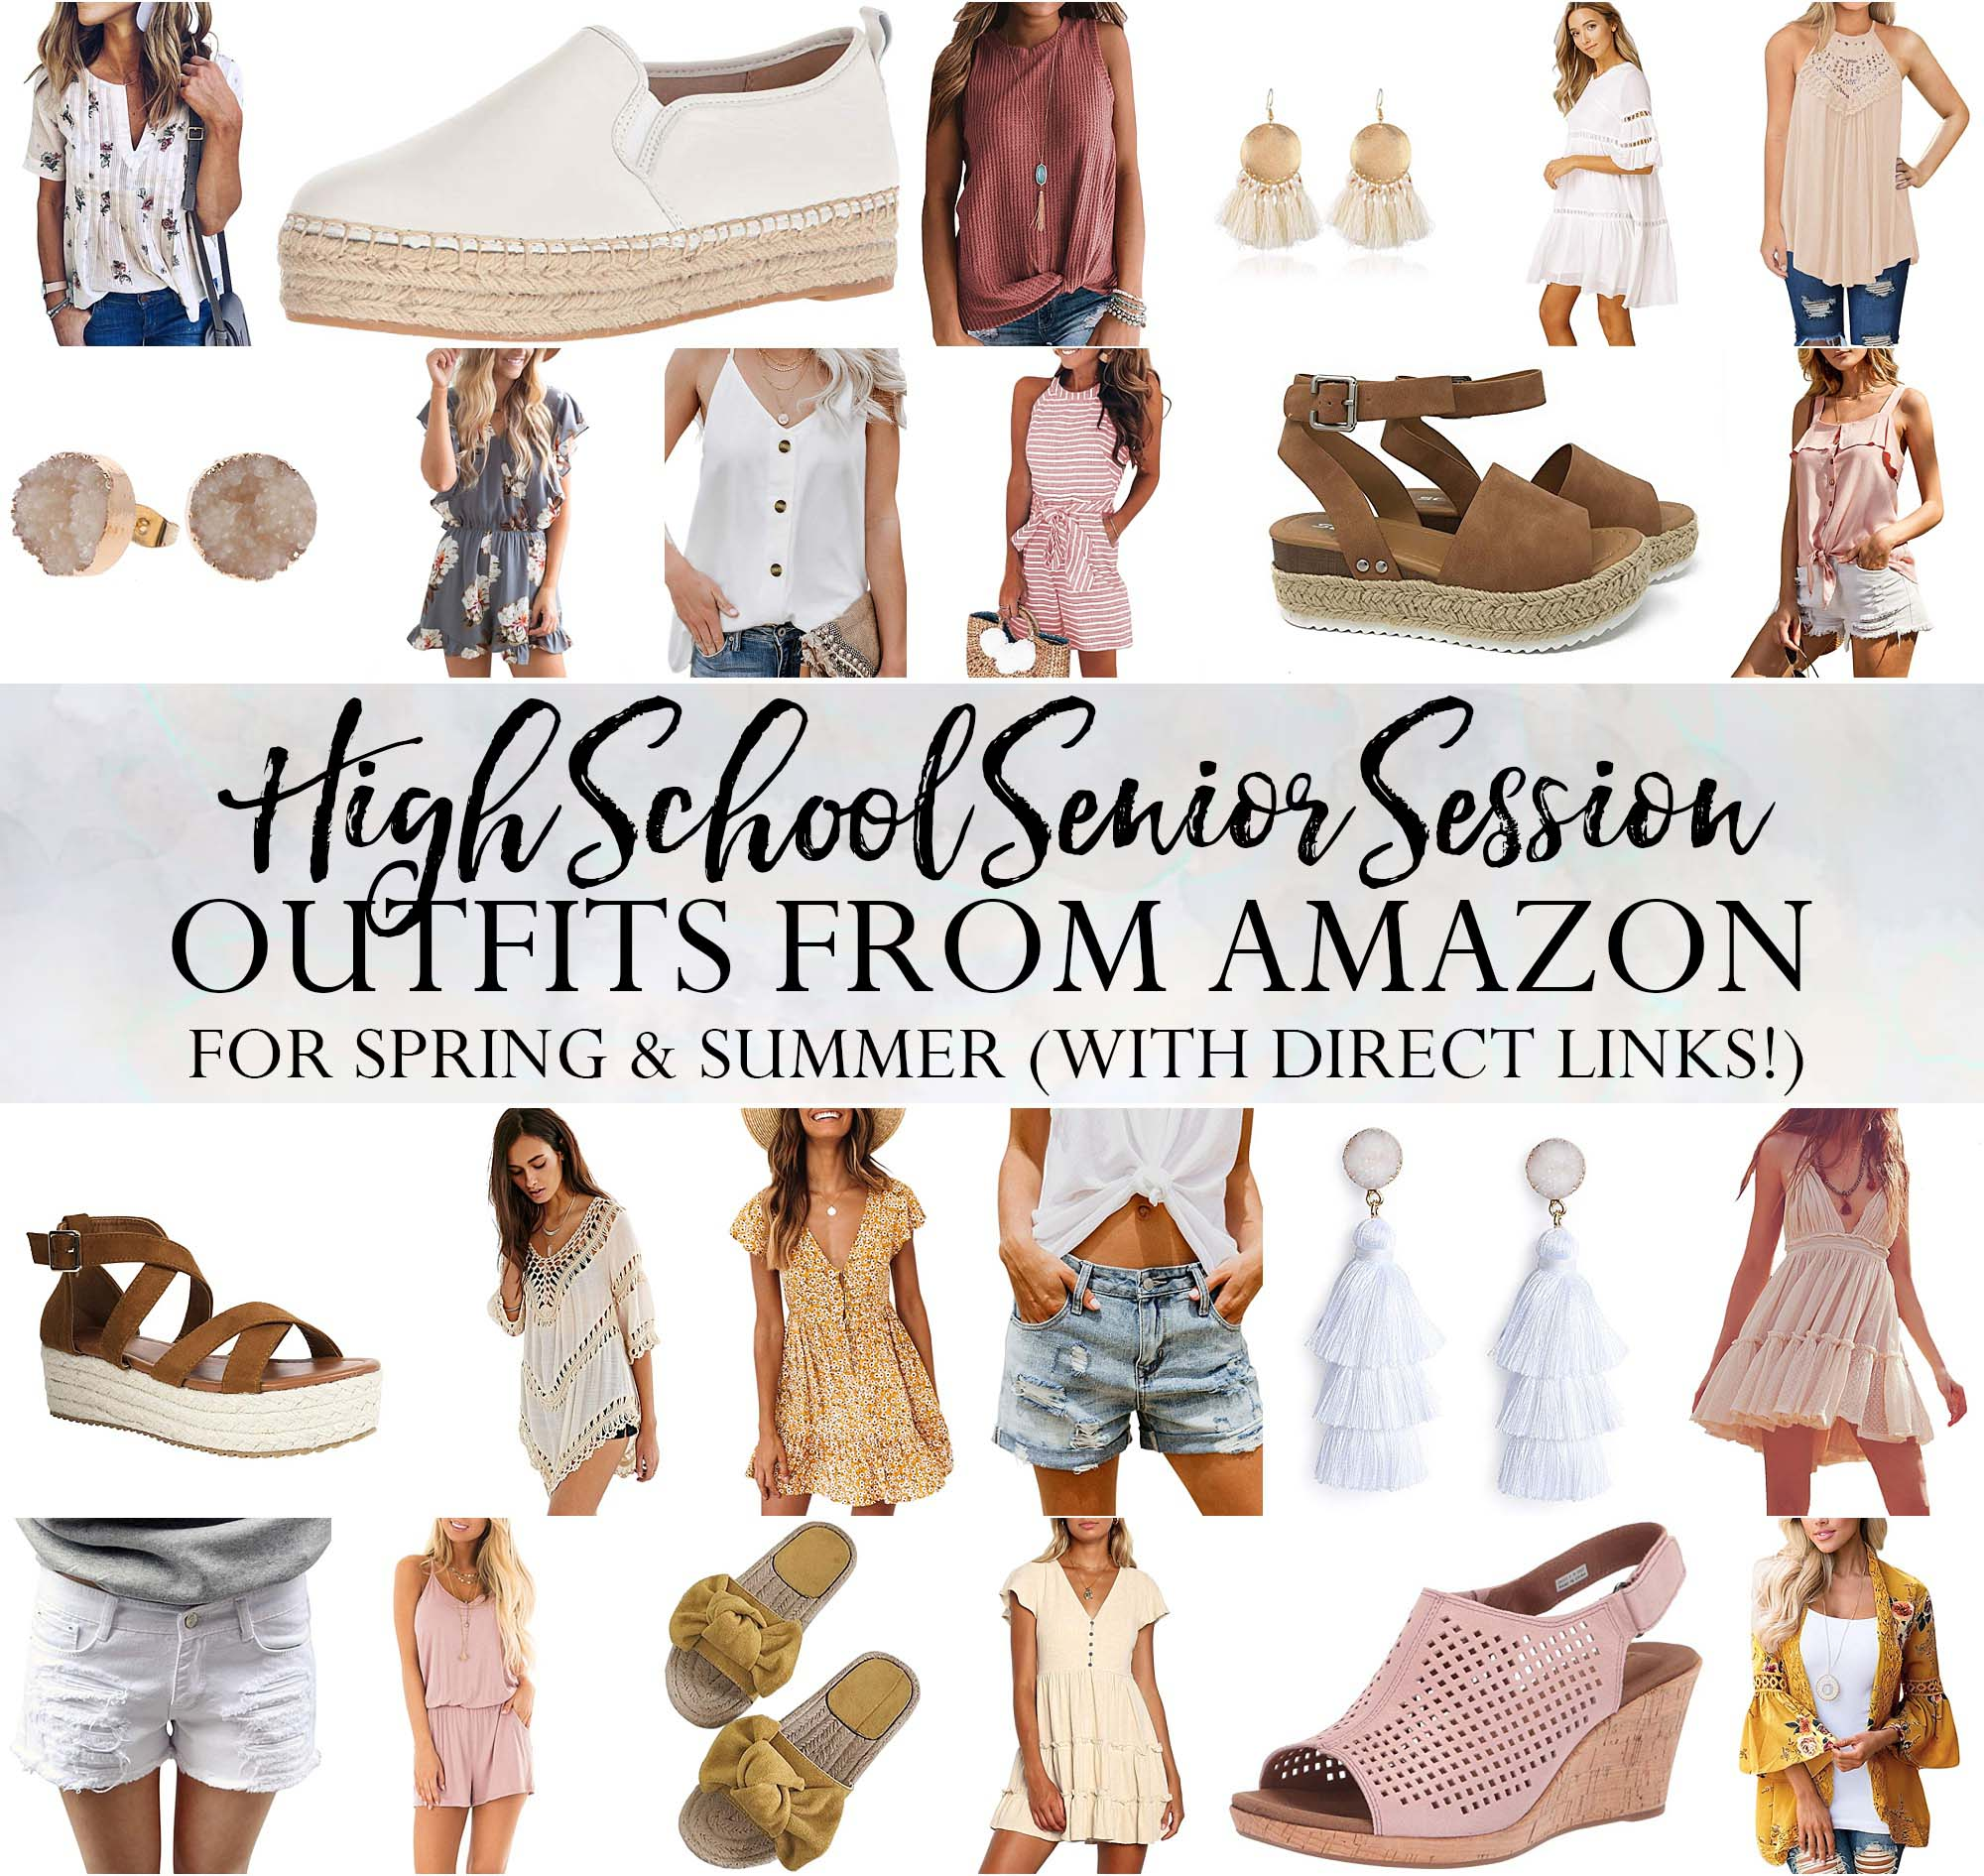 best of Amazon summer women's outfits for high school senior photo session with dresses, rompers, sandals, wedges, summer shorts, tank tops and other accessories.